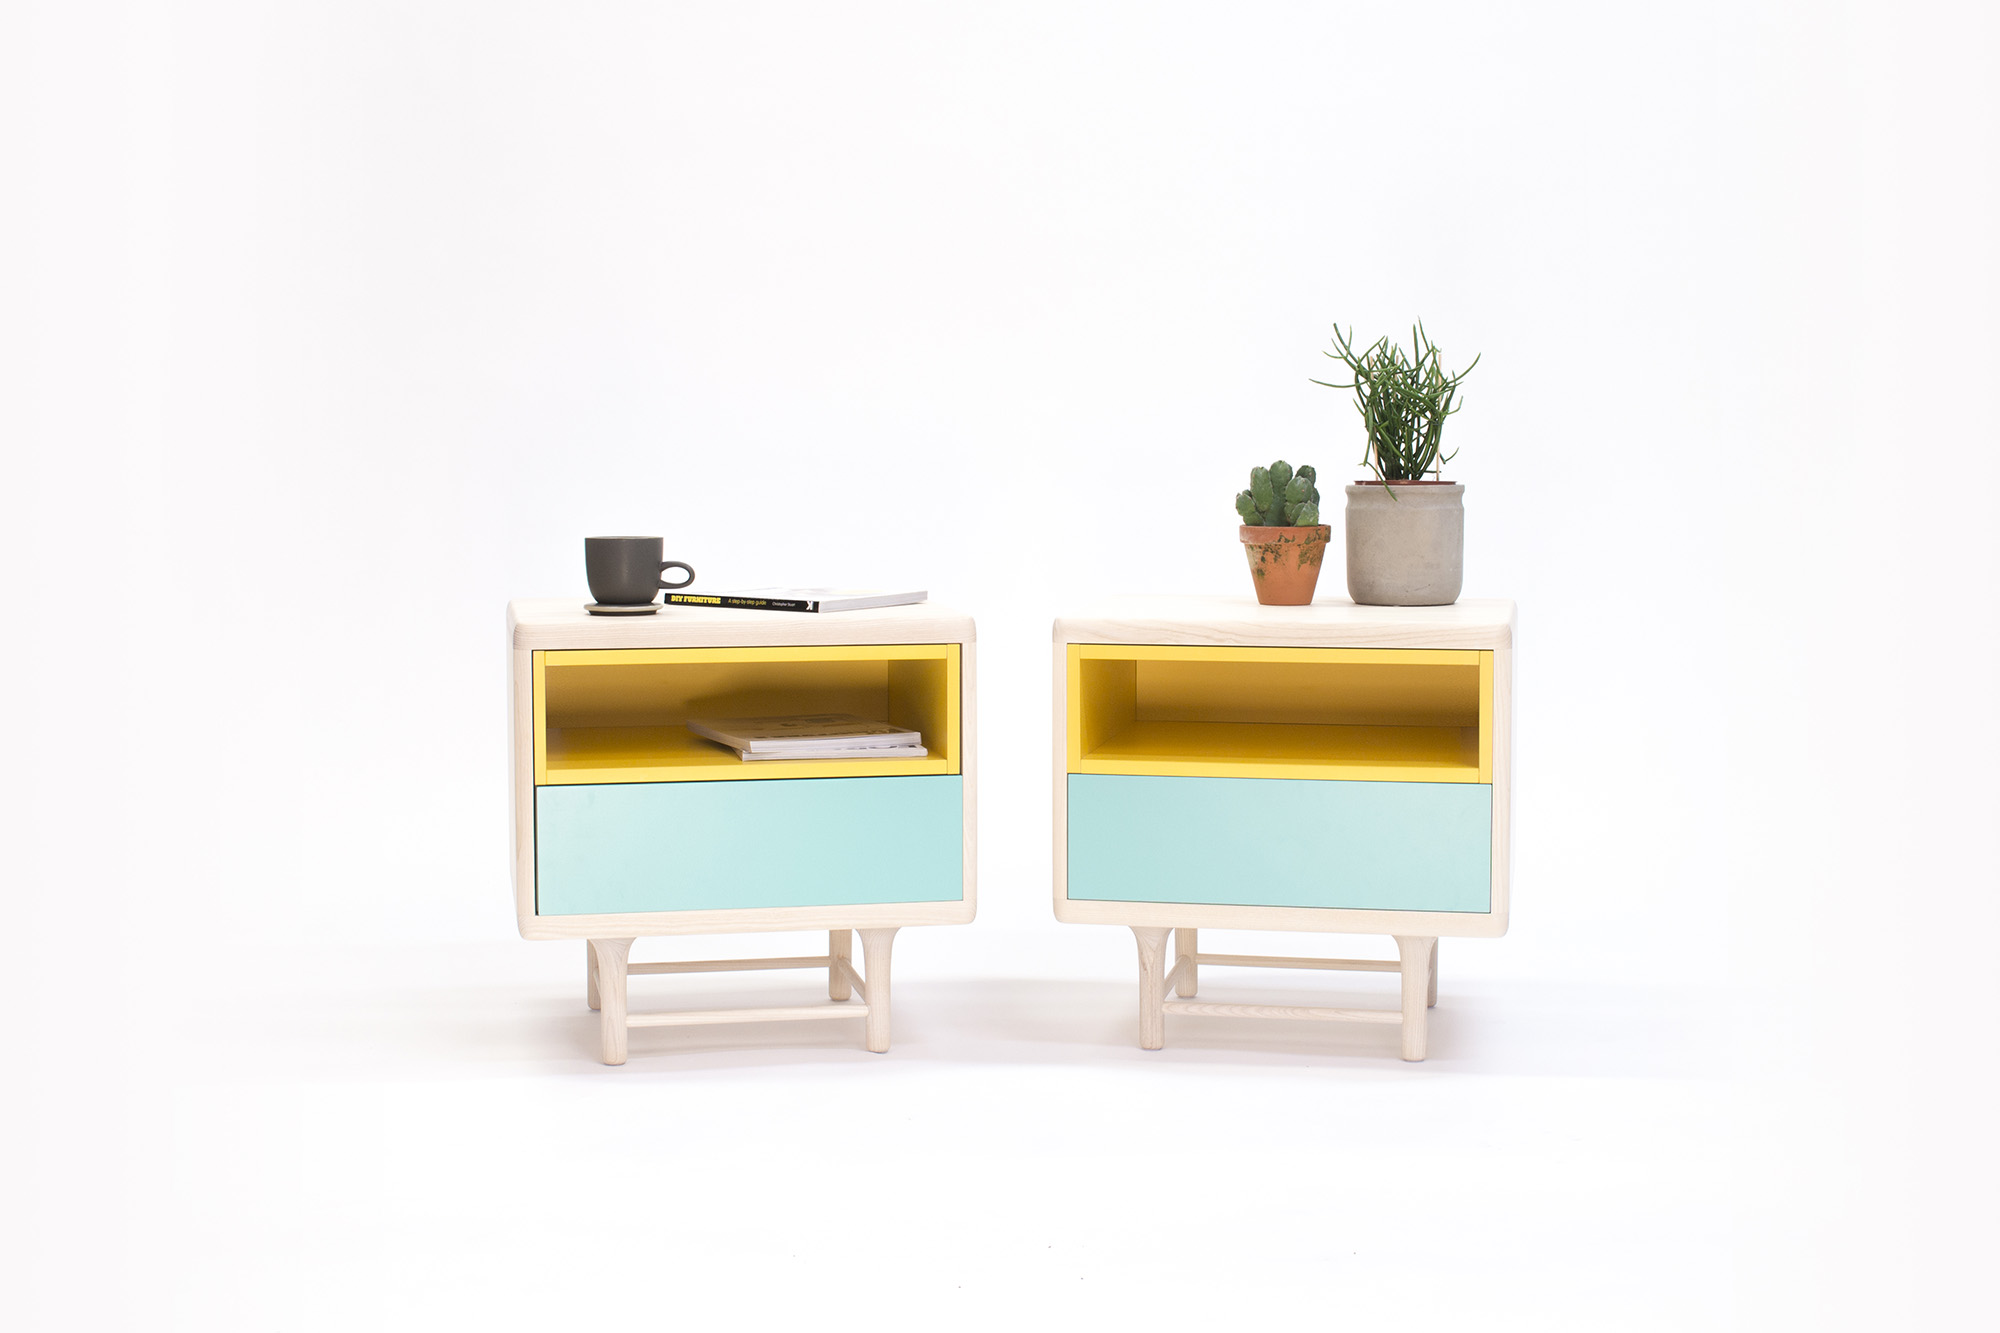 Minimal scandinavian furniture by designer carlos jim nez for House furniture design